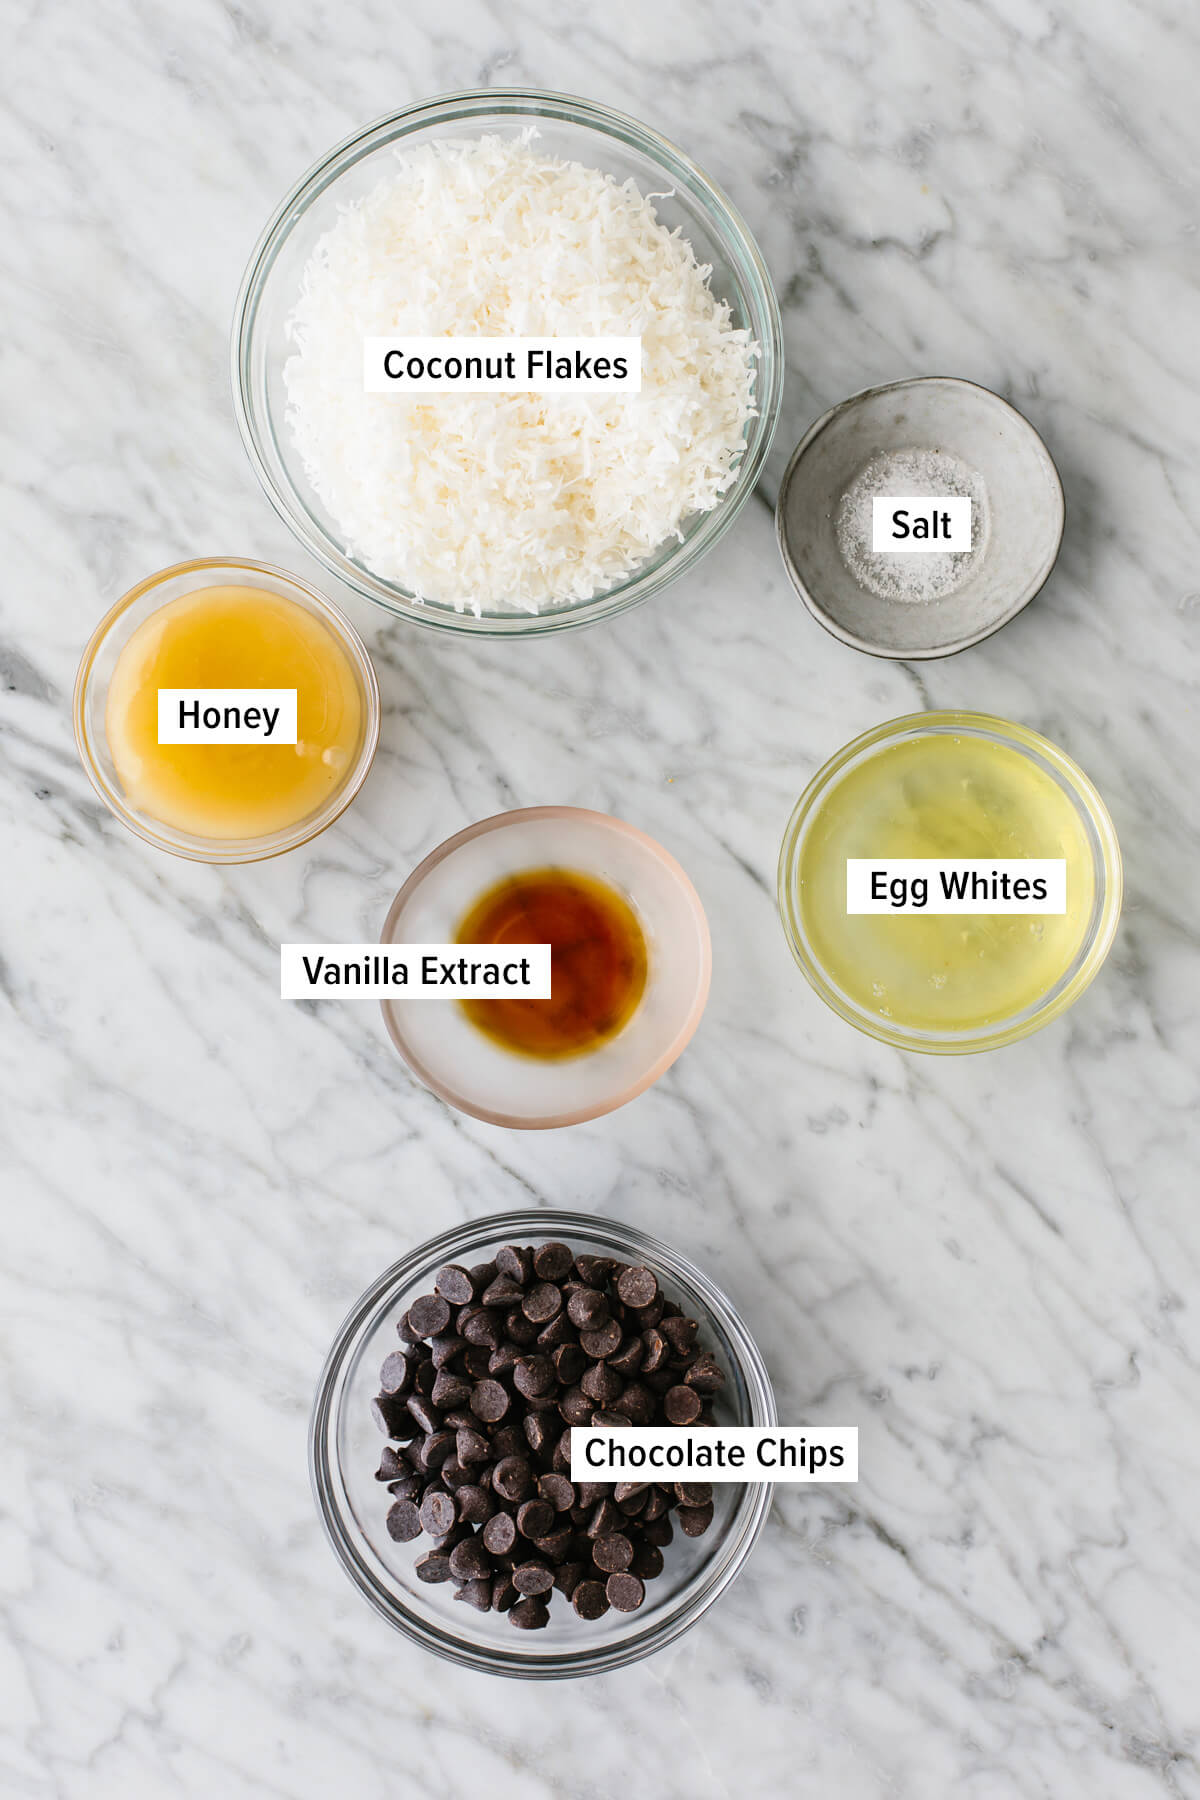 Ingredients for coconut macaroons on a table.